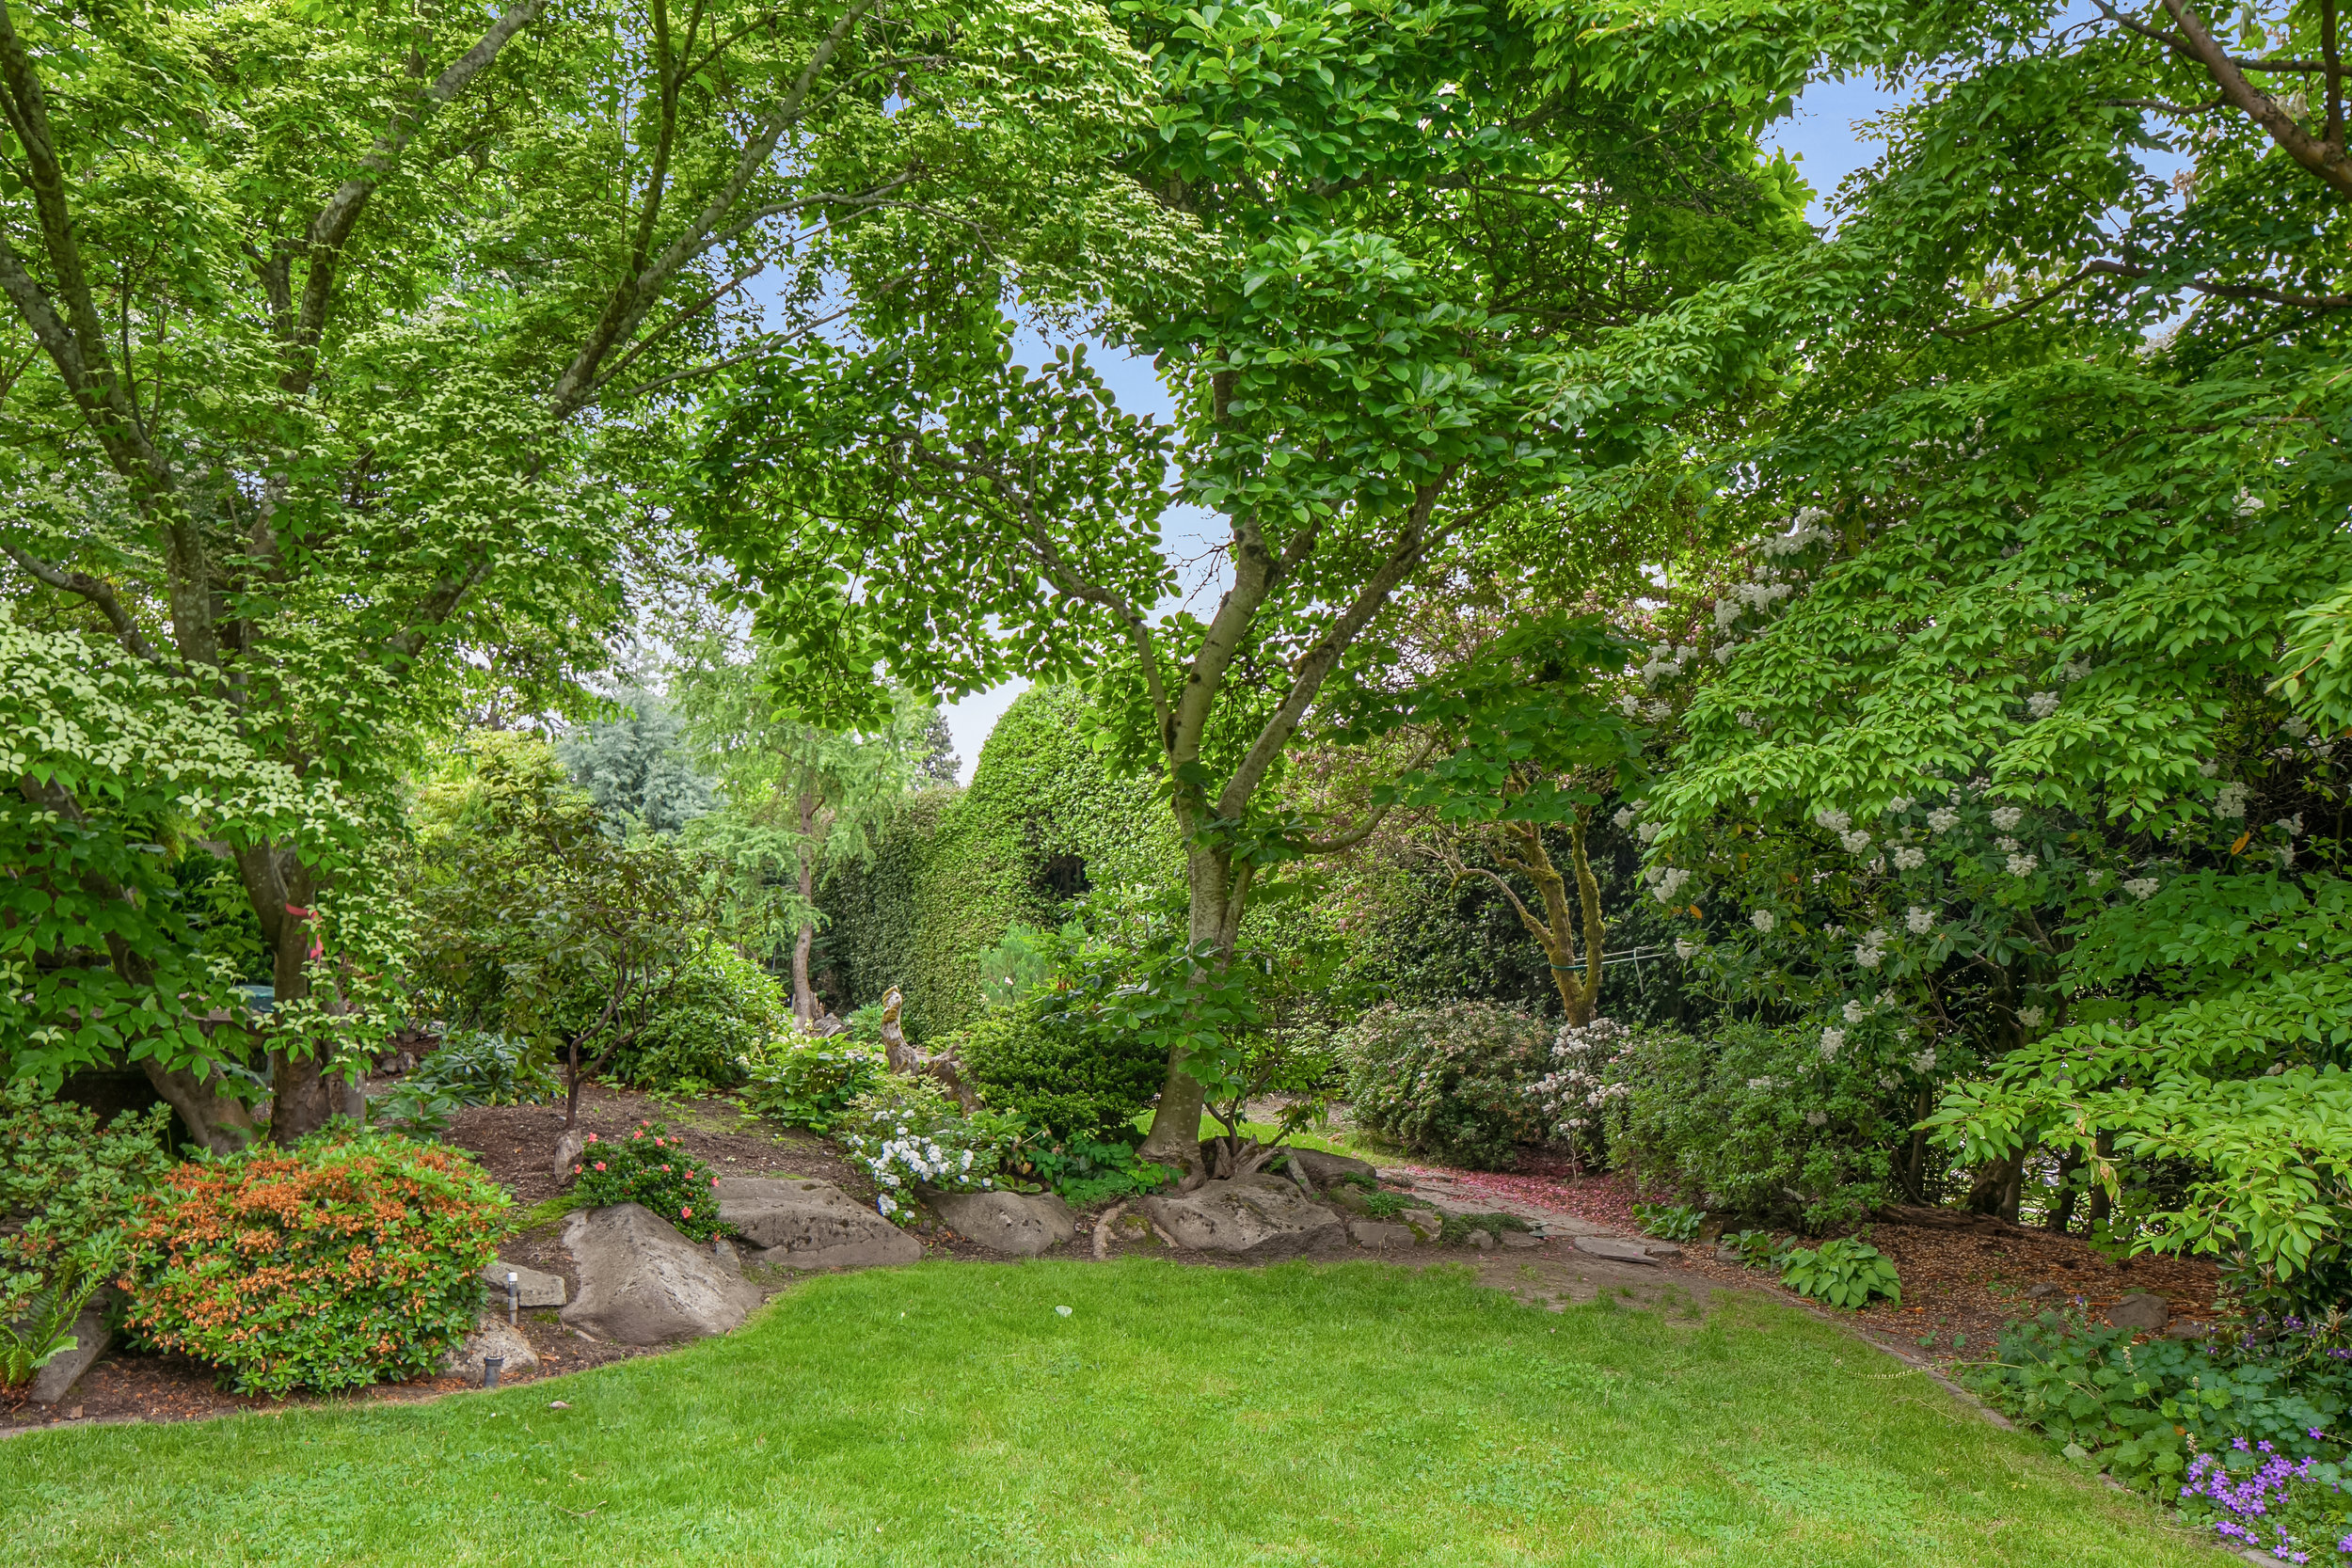 1115 41st Ave E, Seattle | $3,765,000